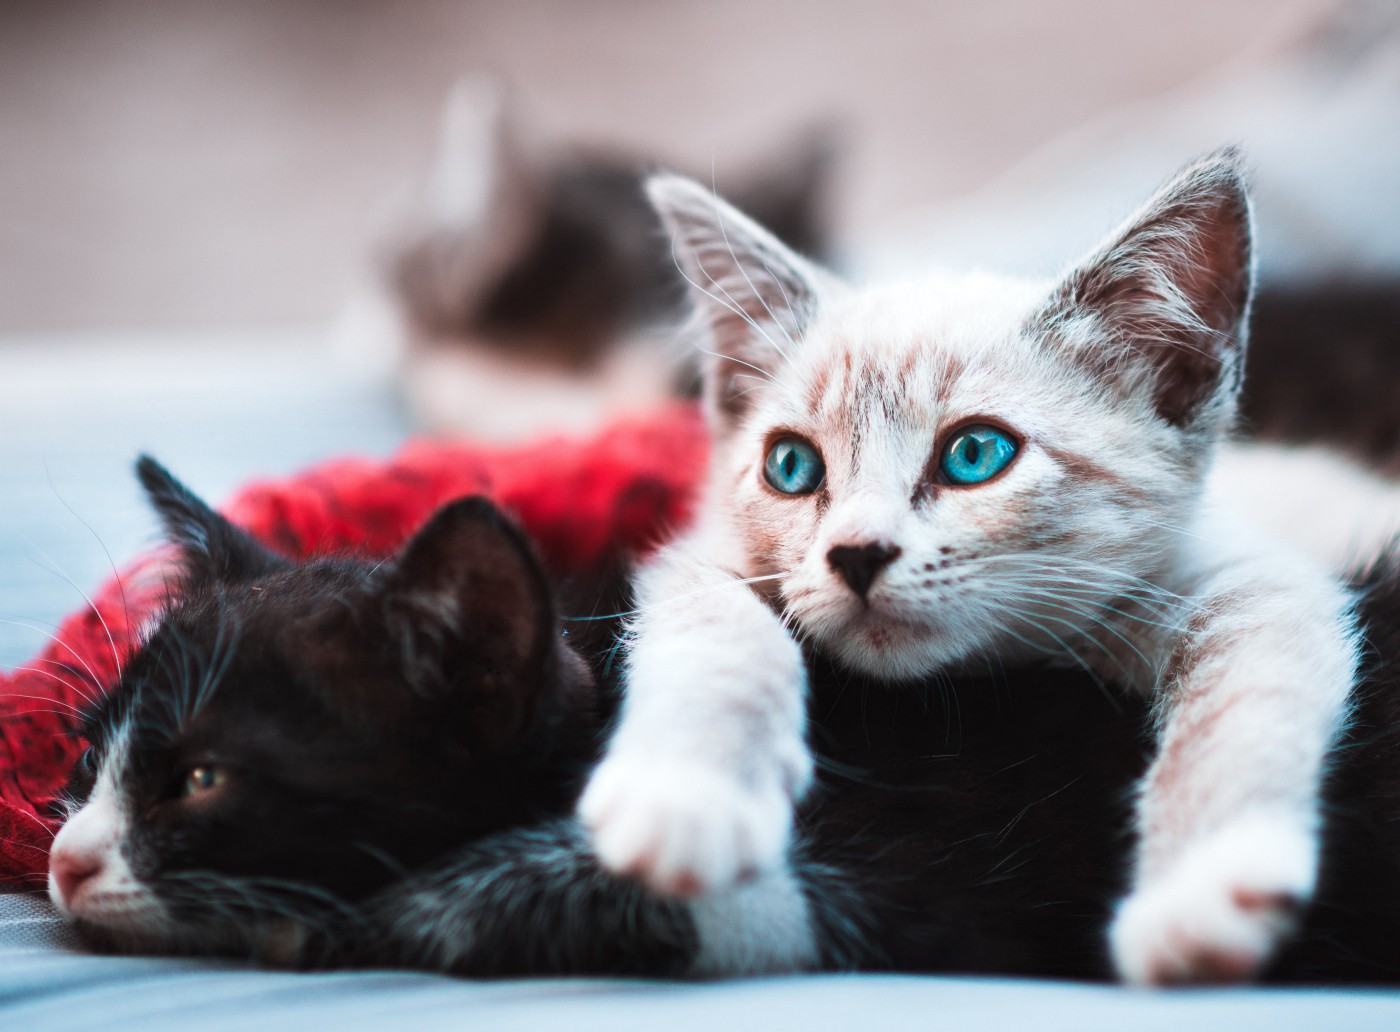 A white-and-tan kitten with bright blue eyes lying on top of a black-and-white kitten on the ground.